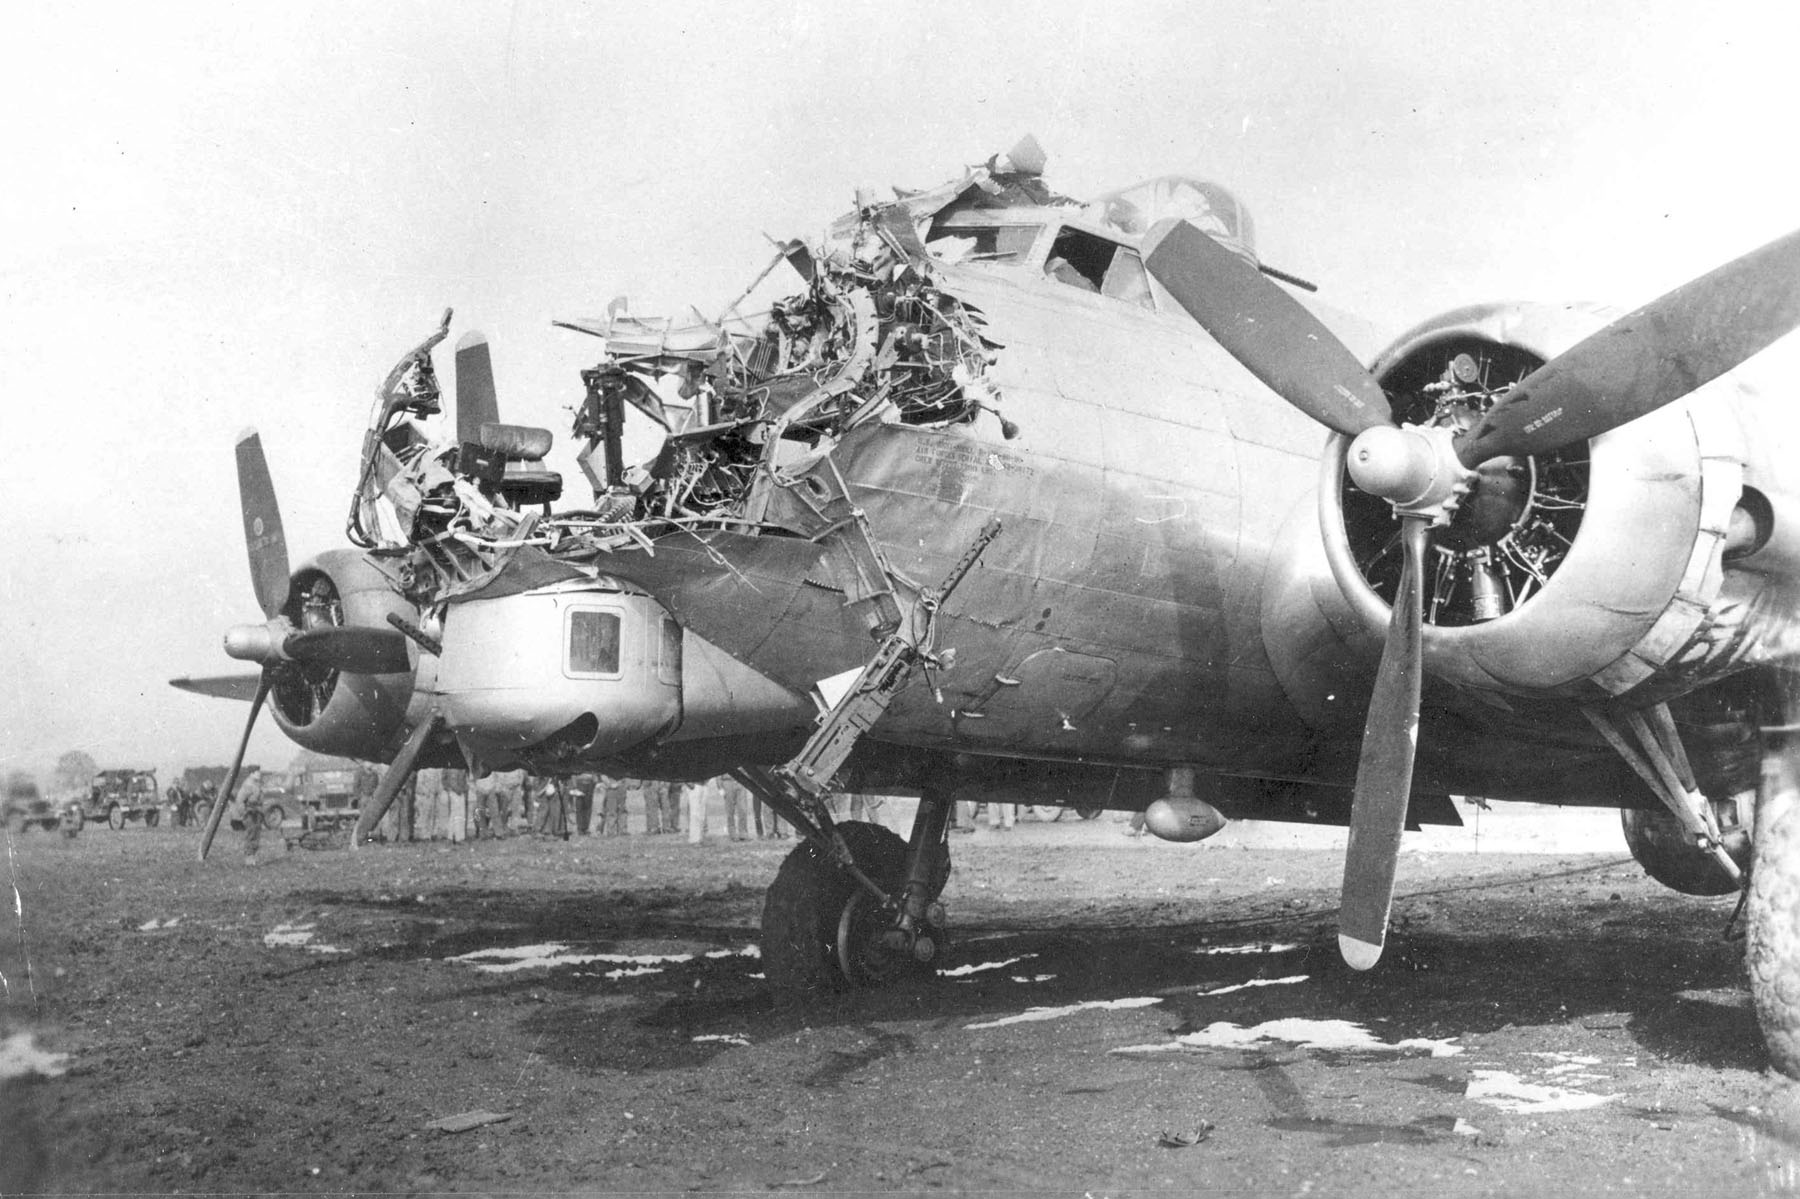 A B-17 Flying Fortress took this damage and successfully returned to its  home airfield.